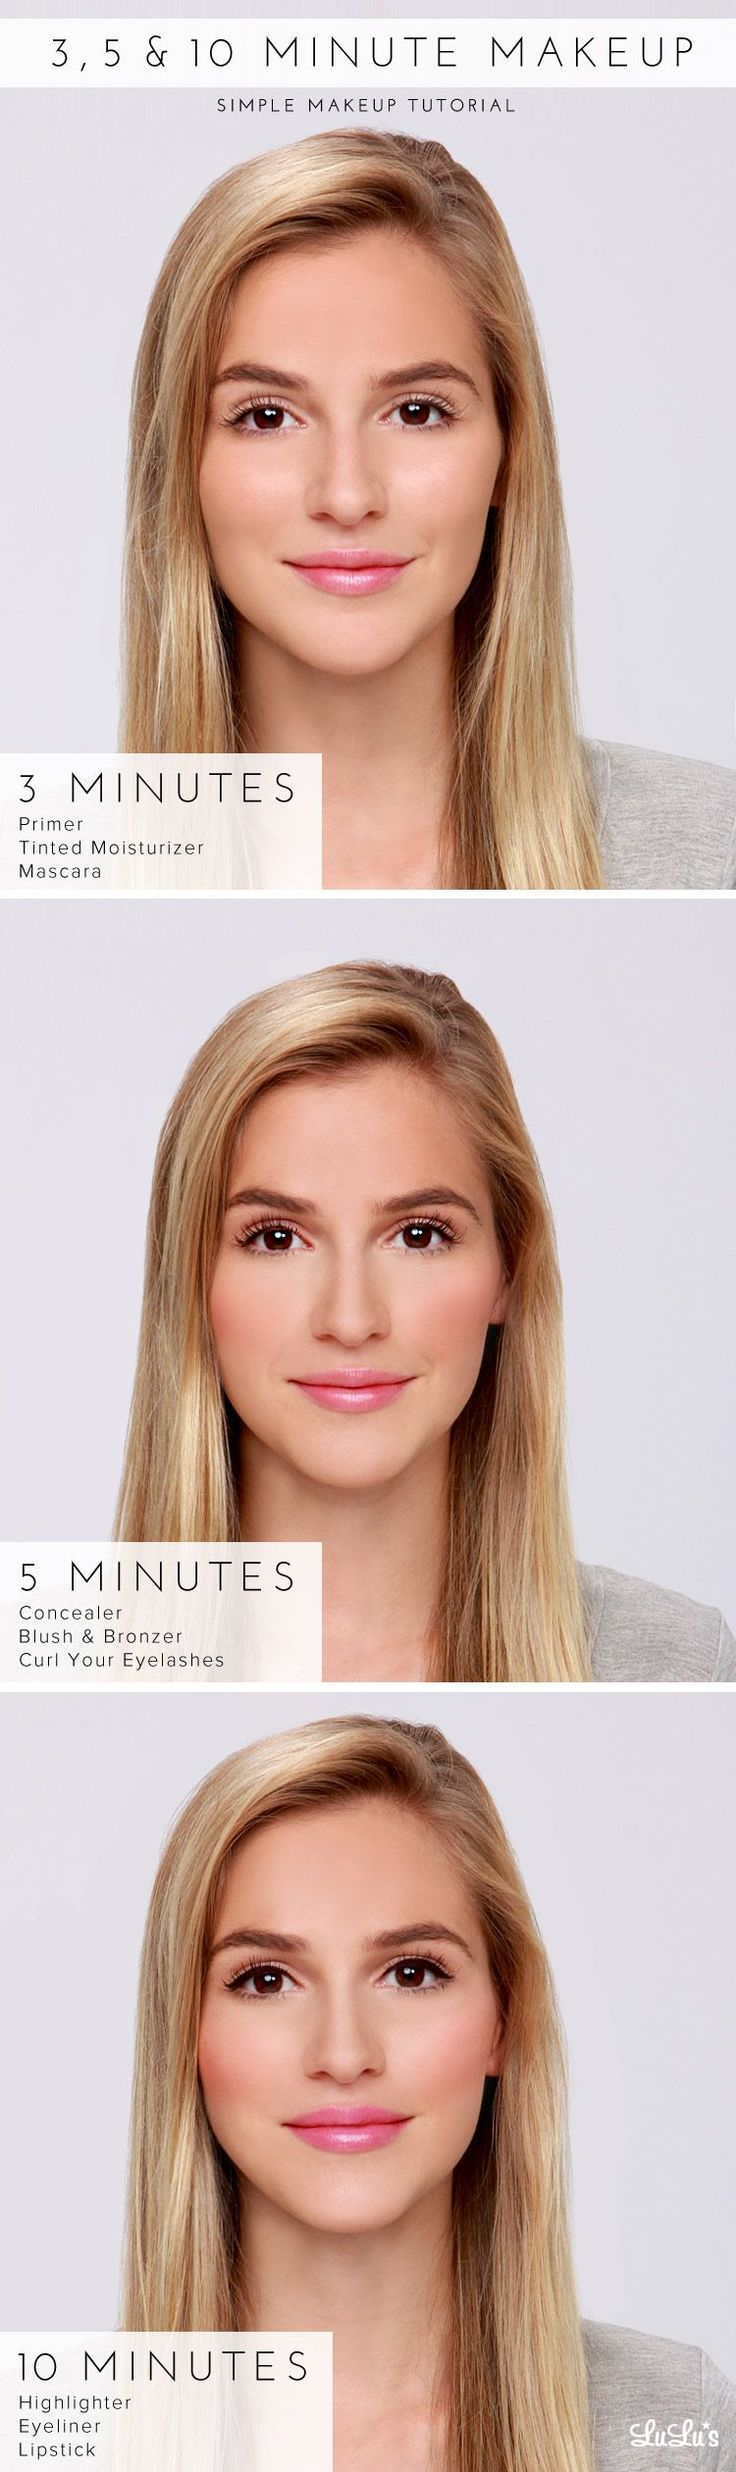 LuLu*s How-To: 3, 5 10 Minute Makeup Tutorial